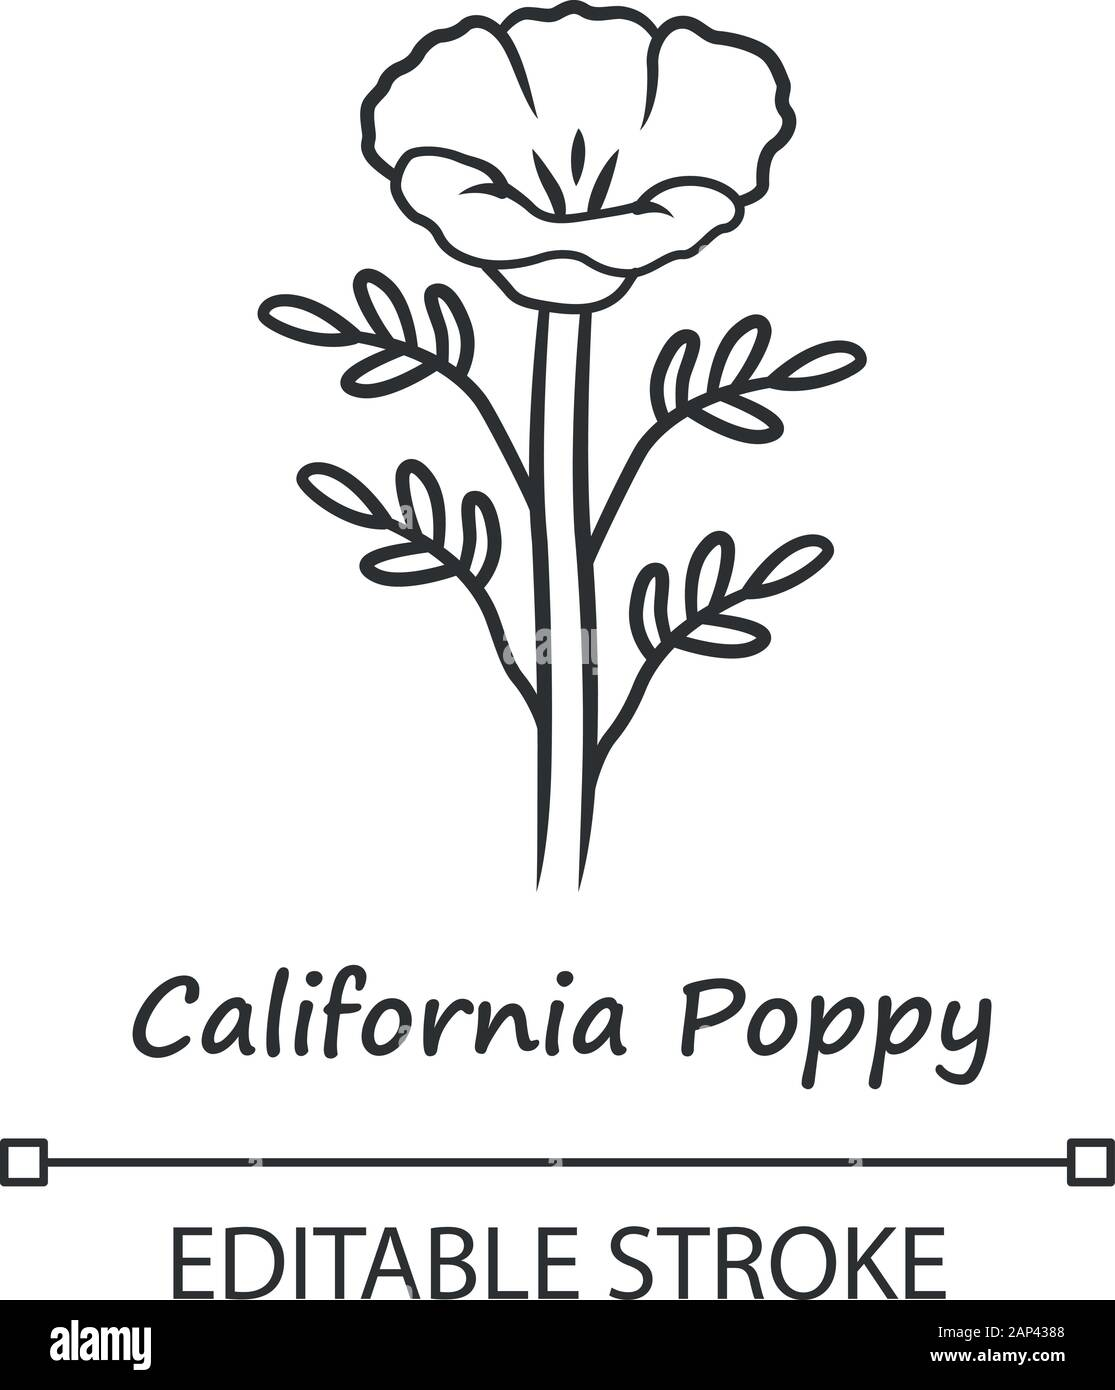 California poppy linear icon. Papaver rhoeas with name. Corn rose blooming wildflower. Herbaceous plants. Field poppy. Thin line illustration. Vector Stock Vector